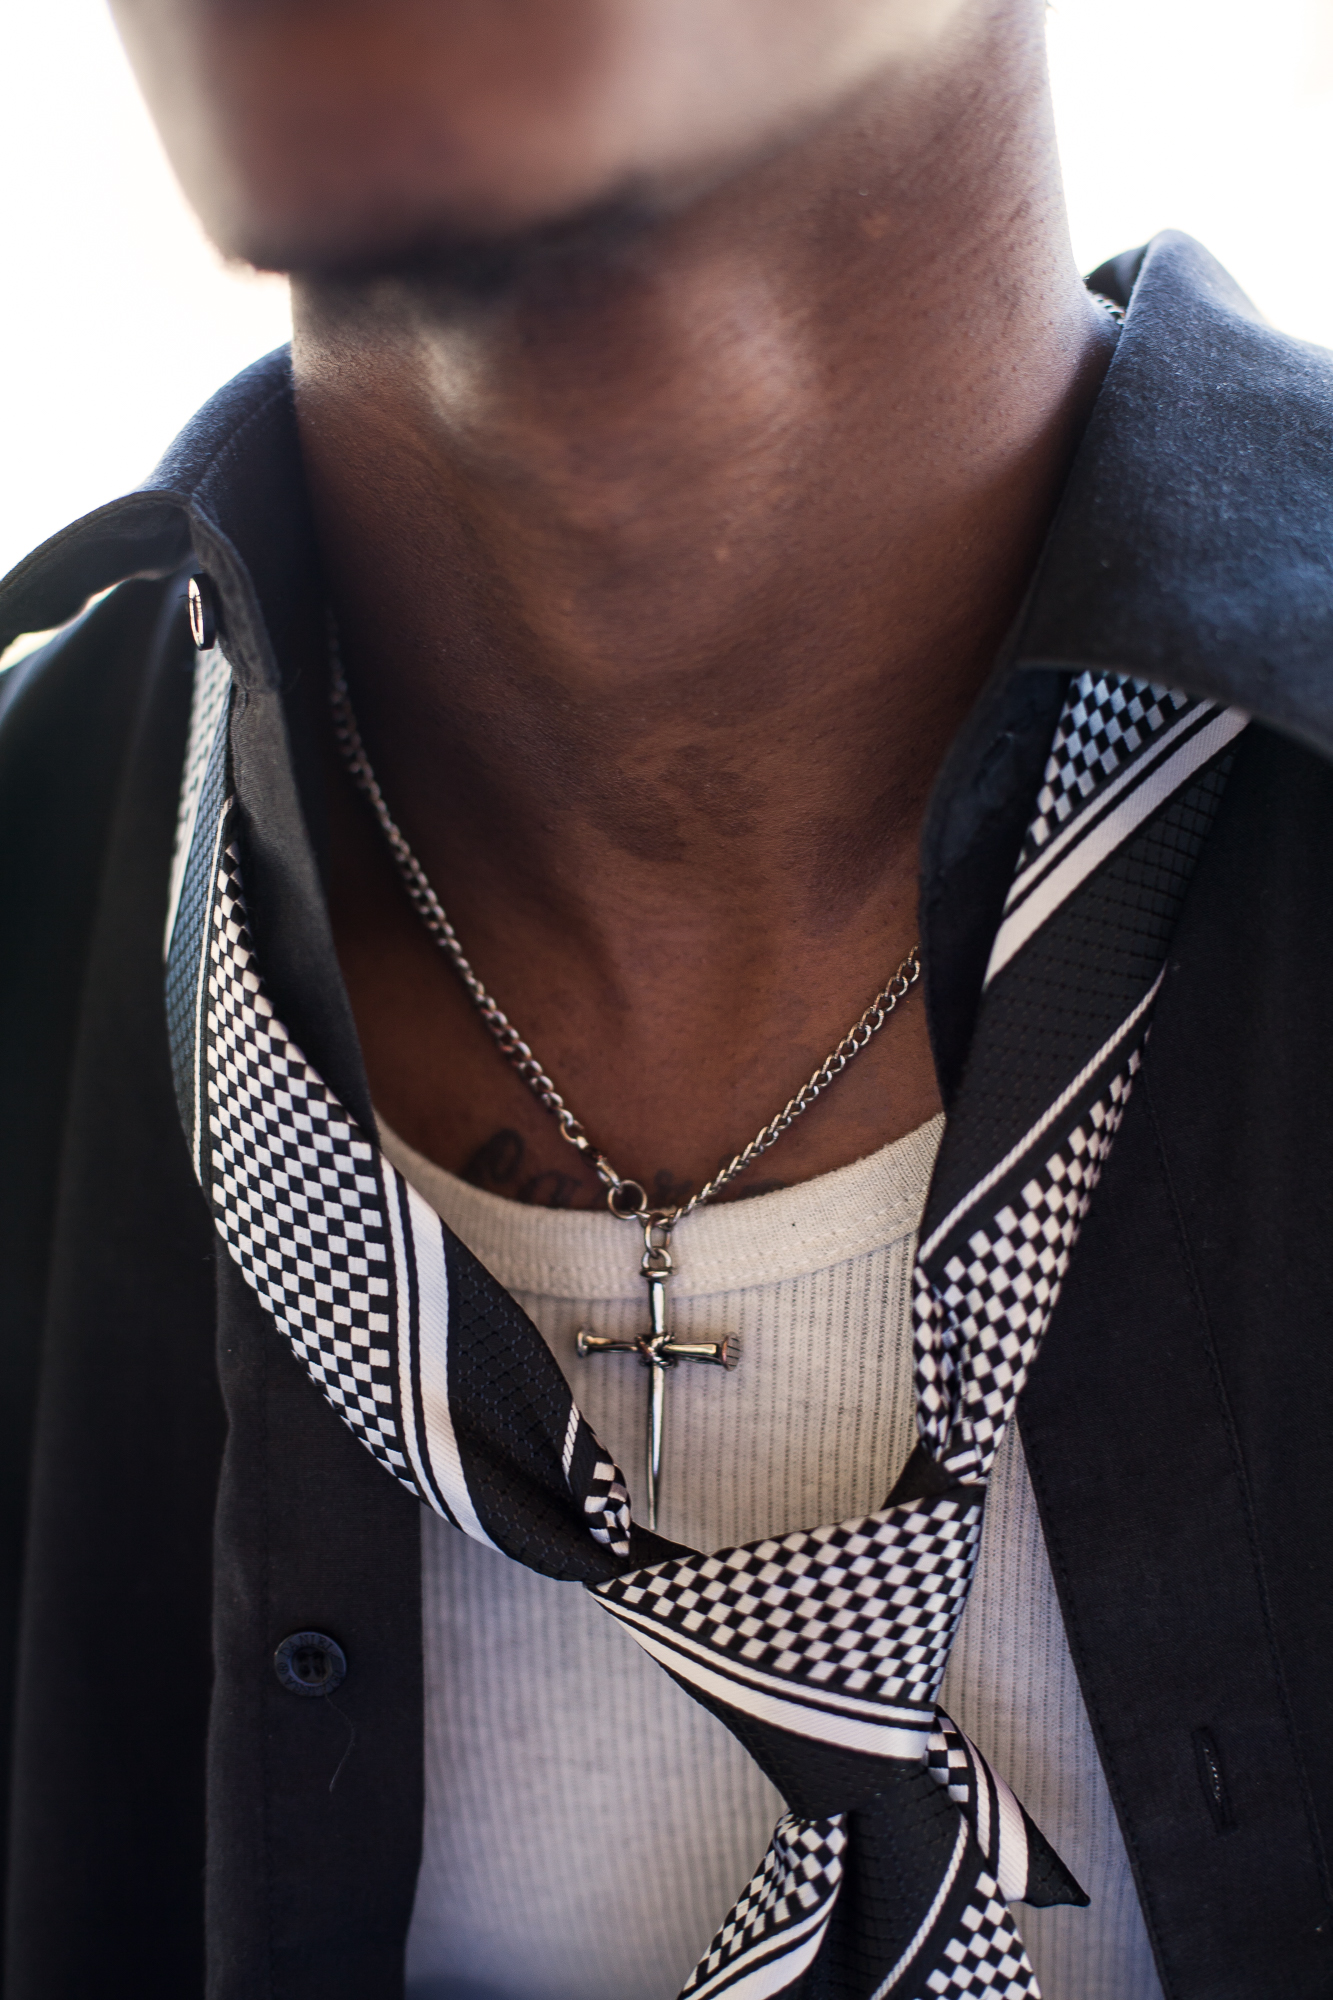 Rashard Johnson's crucifix after a job fair for felons. In his lowest moments, Rashard finds refuge in his faith.